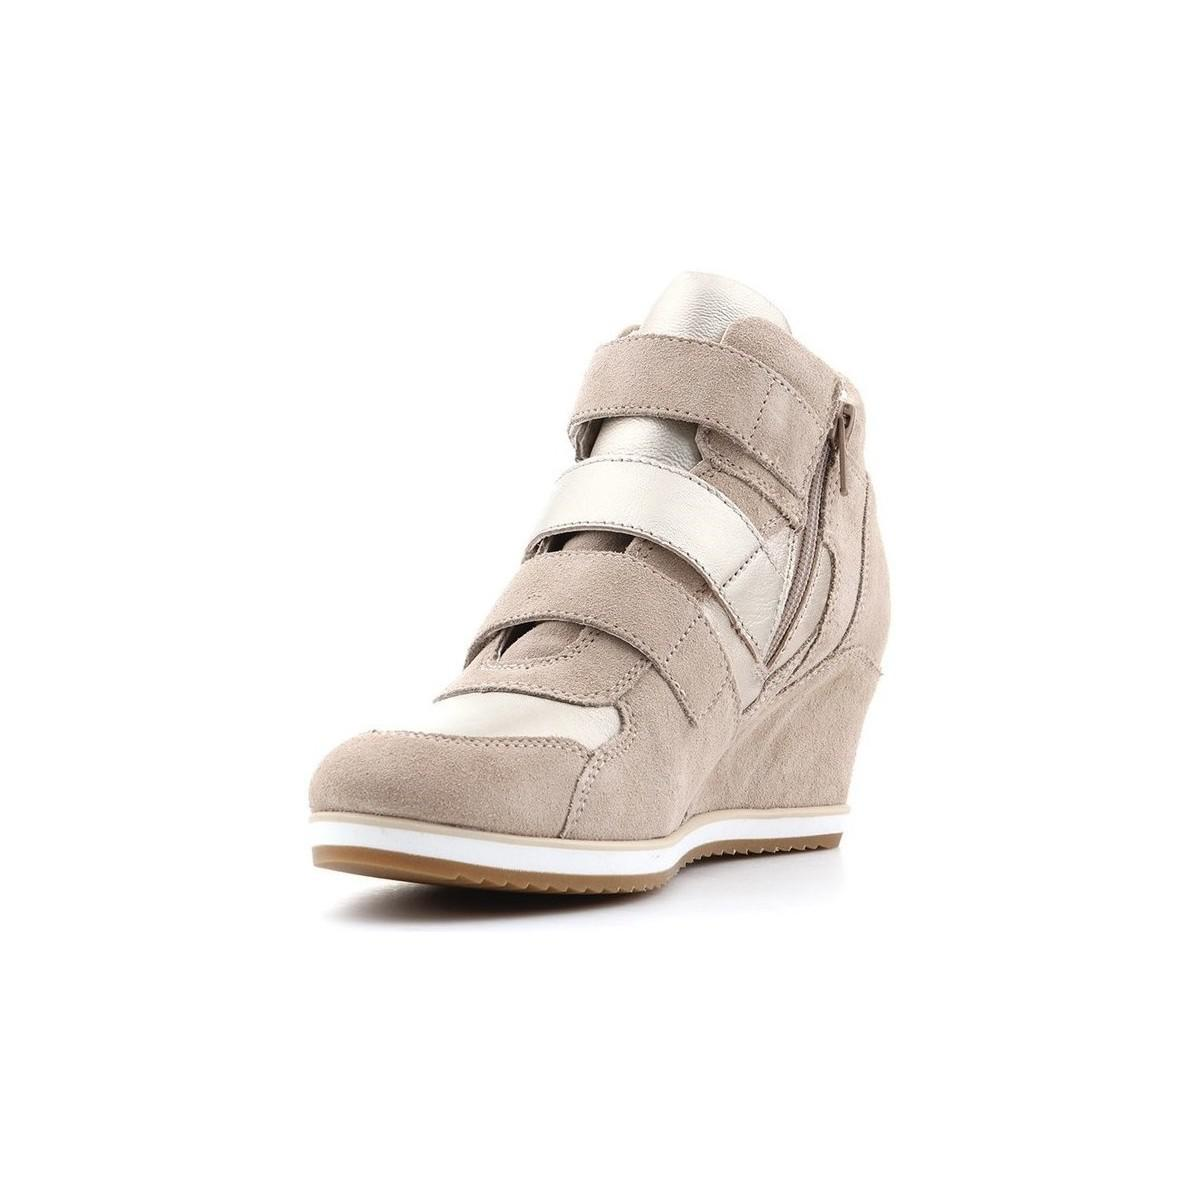 Geox D Illusion D Ss17 Women's Shoes (high-top Trainers) In Beige in Natural